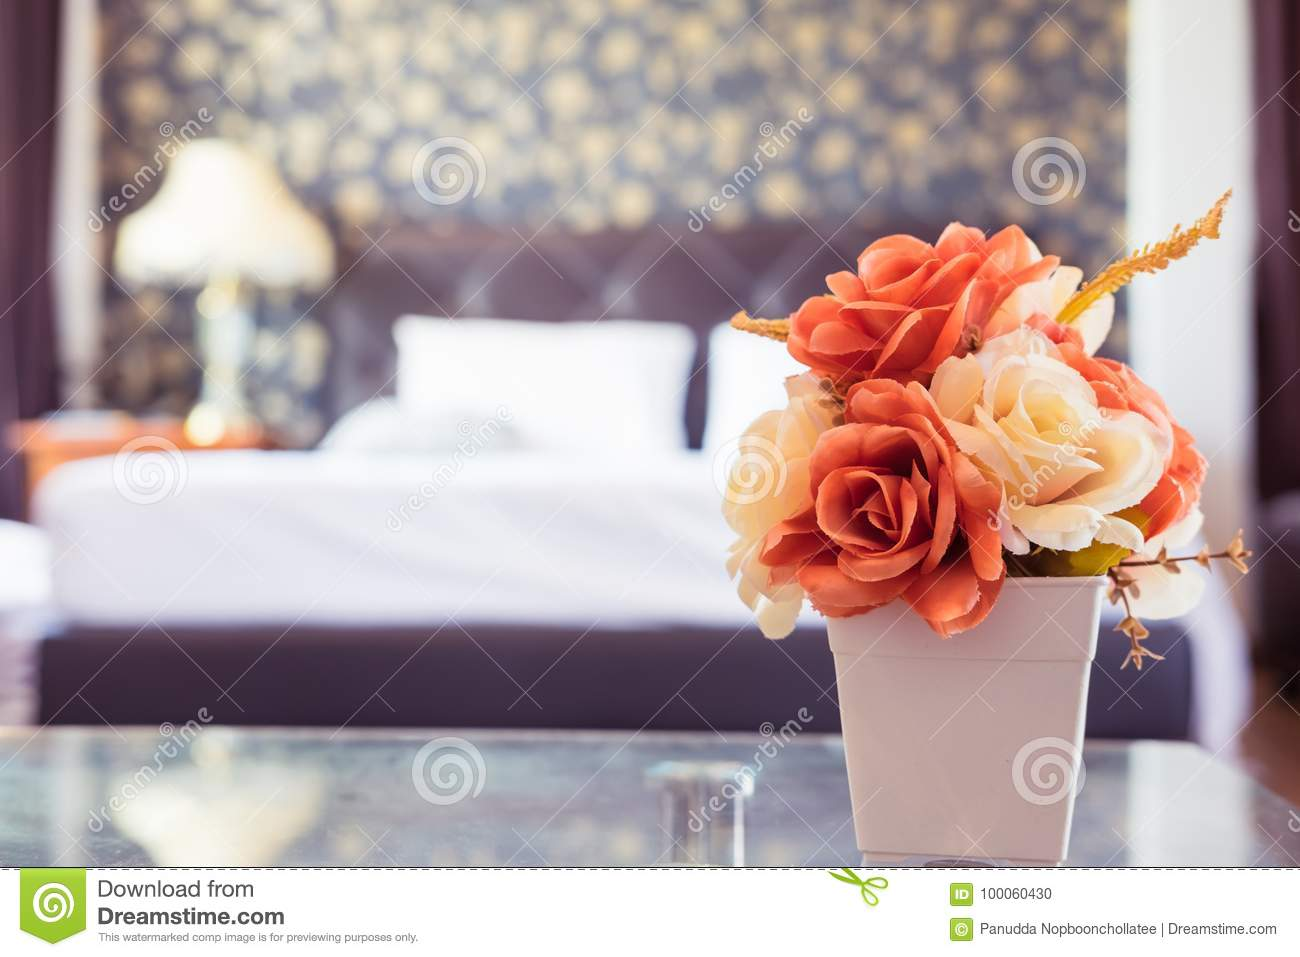 Vintage Rose Flower In The Bedroom Stock Photo - Image of background ...